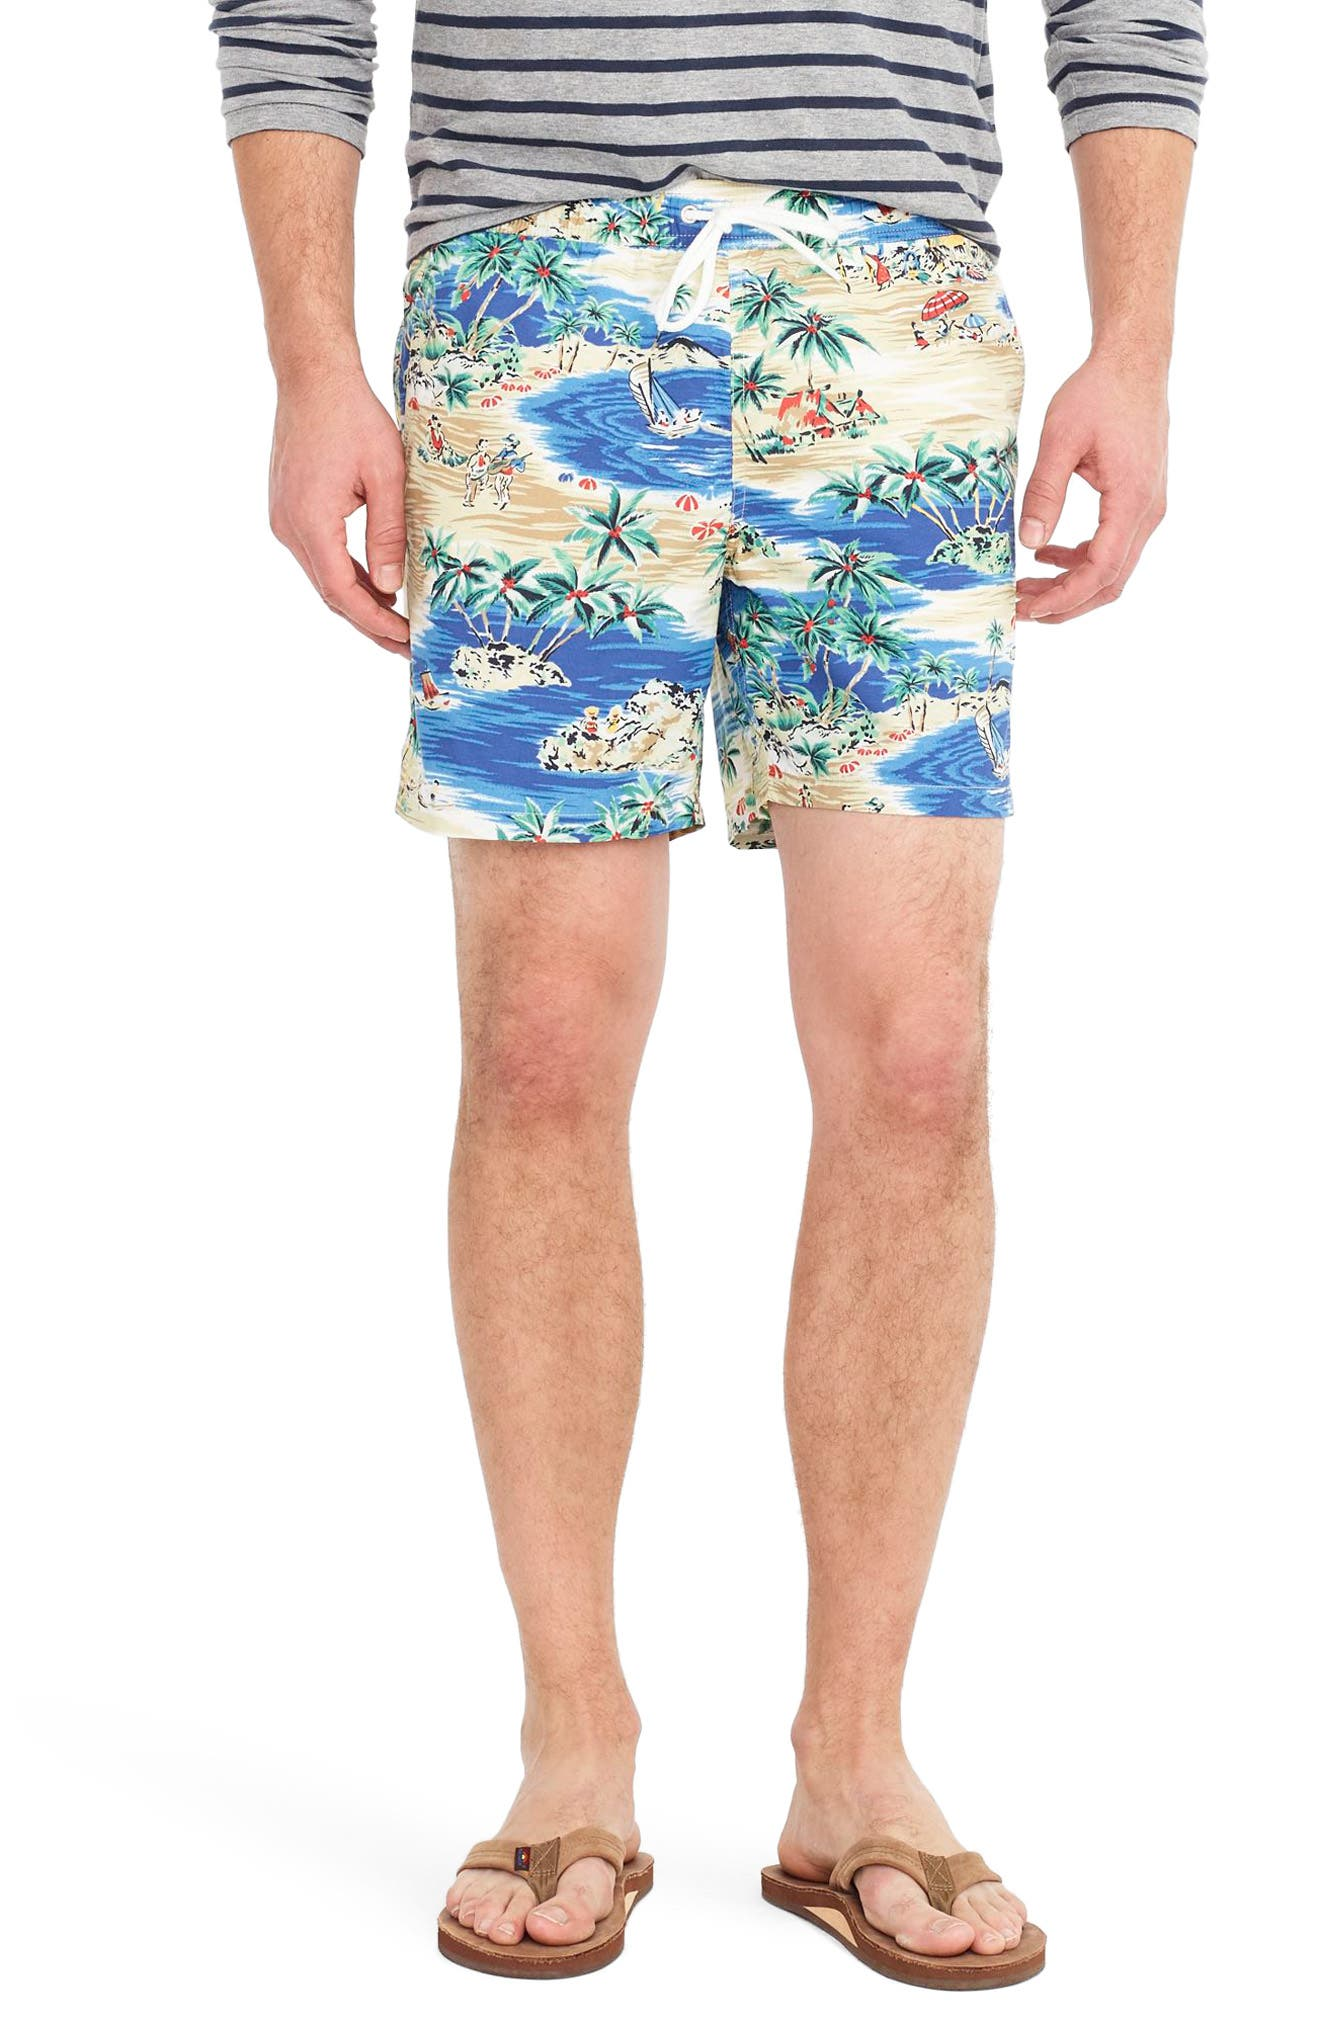 J.Crew Island Print Swim Trunks